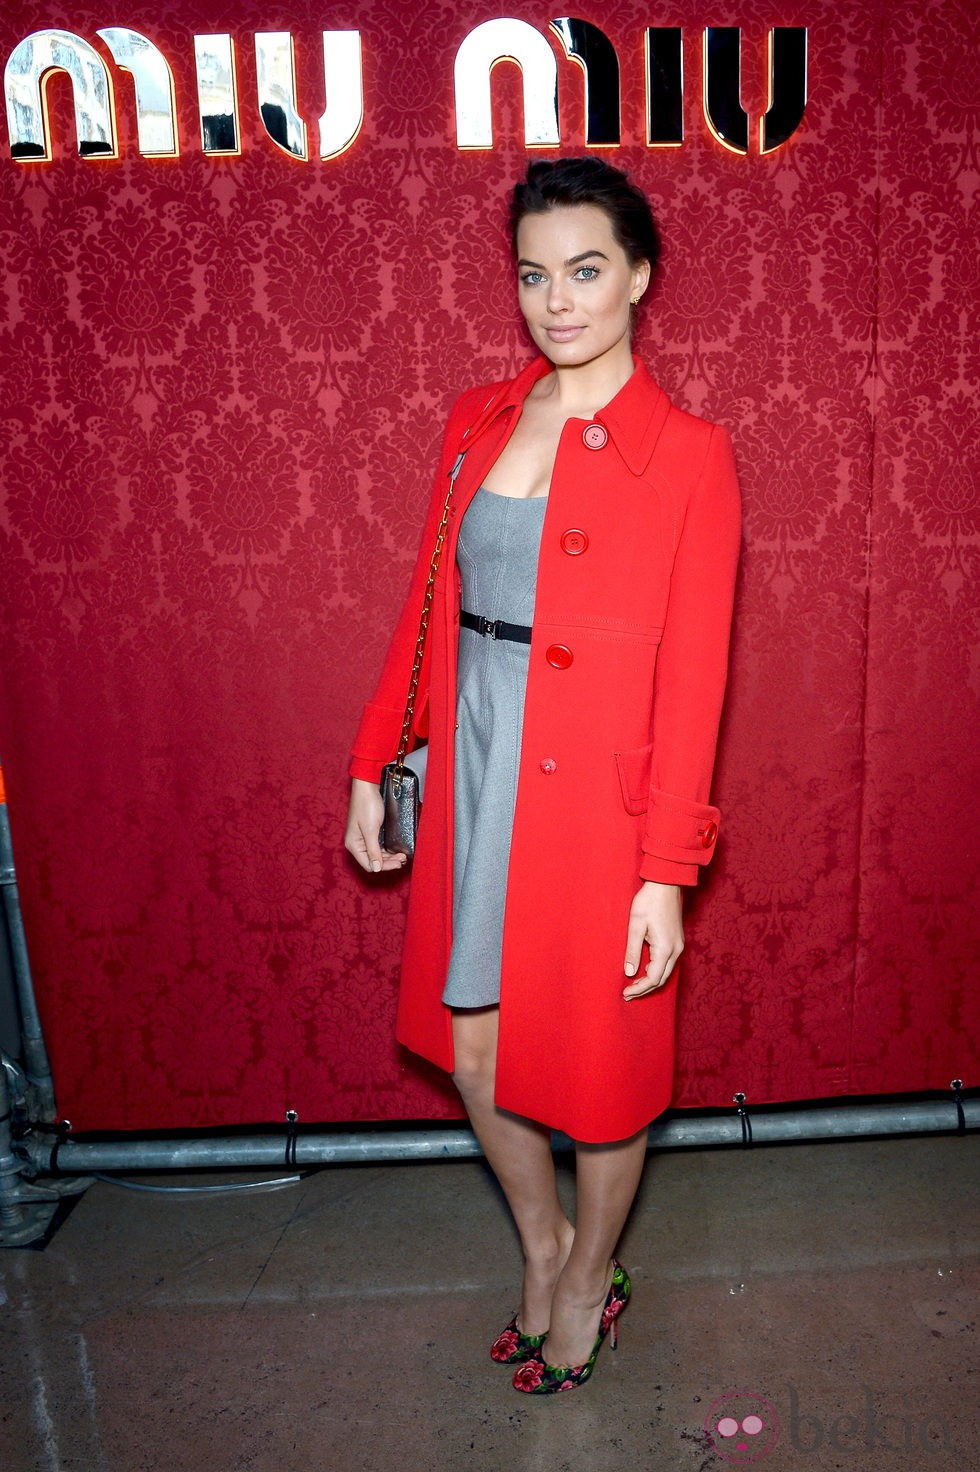 Margot Robbie en el desfile de Miu Miu en la Paris Fashion Week 2014